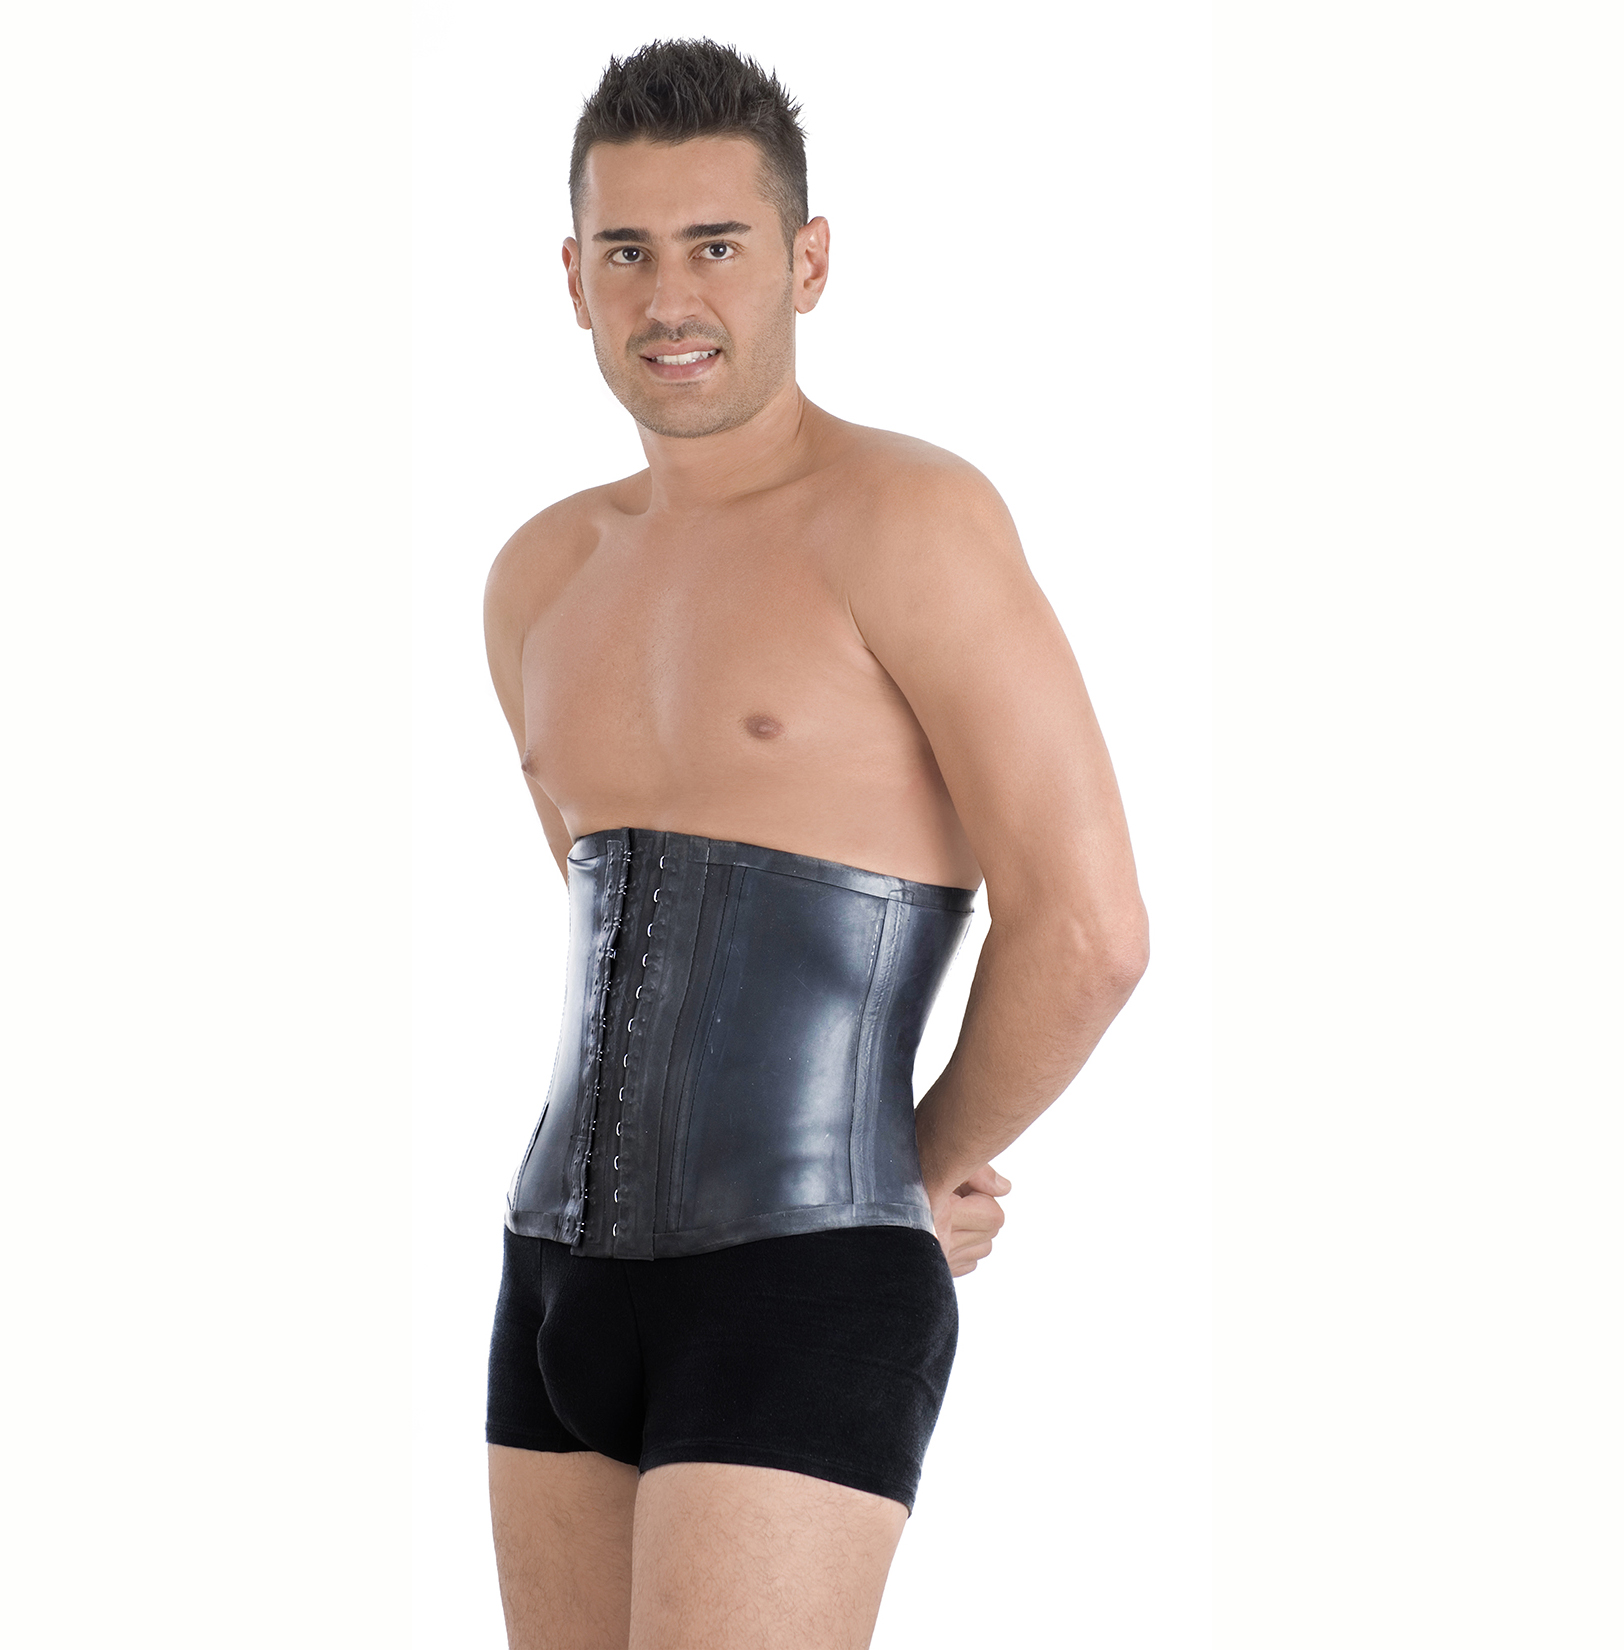 6104564c712 Ann michell Girdle Sport Men 2031 - Catherines Fashion